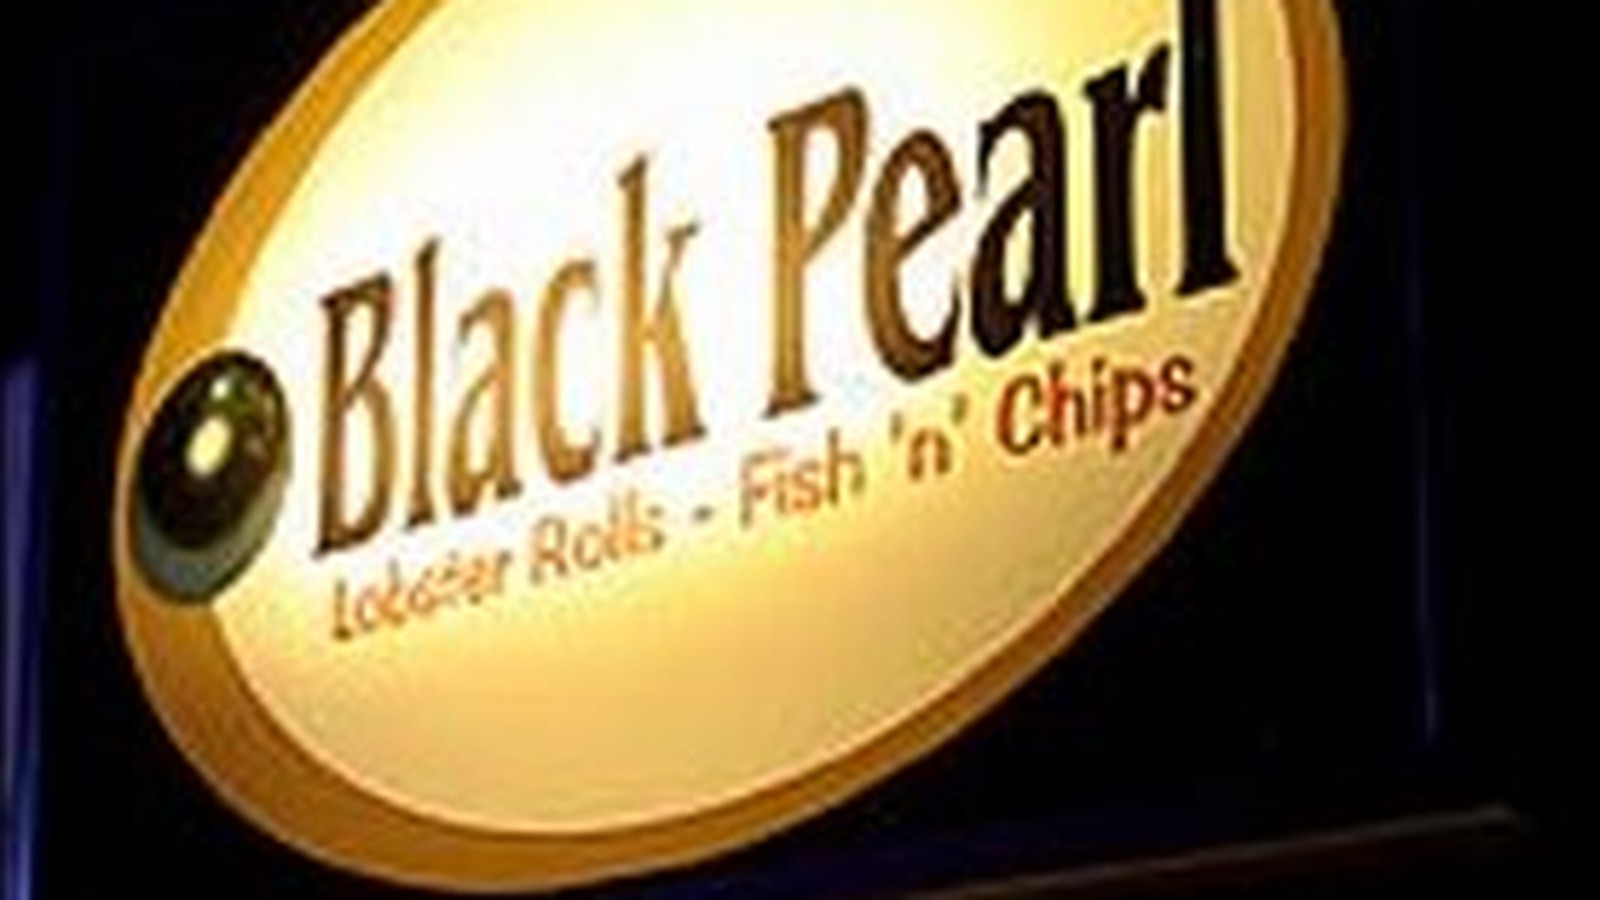 The Black Pearl Kitchen Nightmares Closed